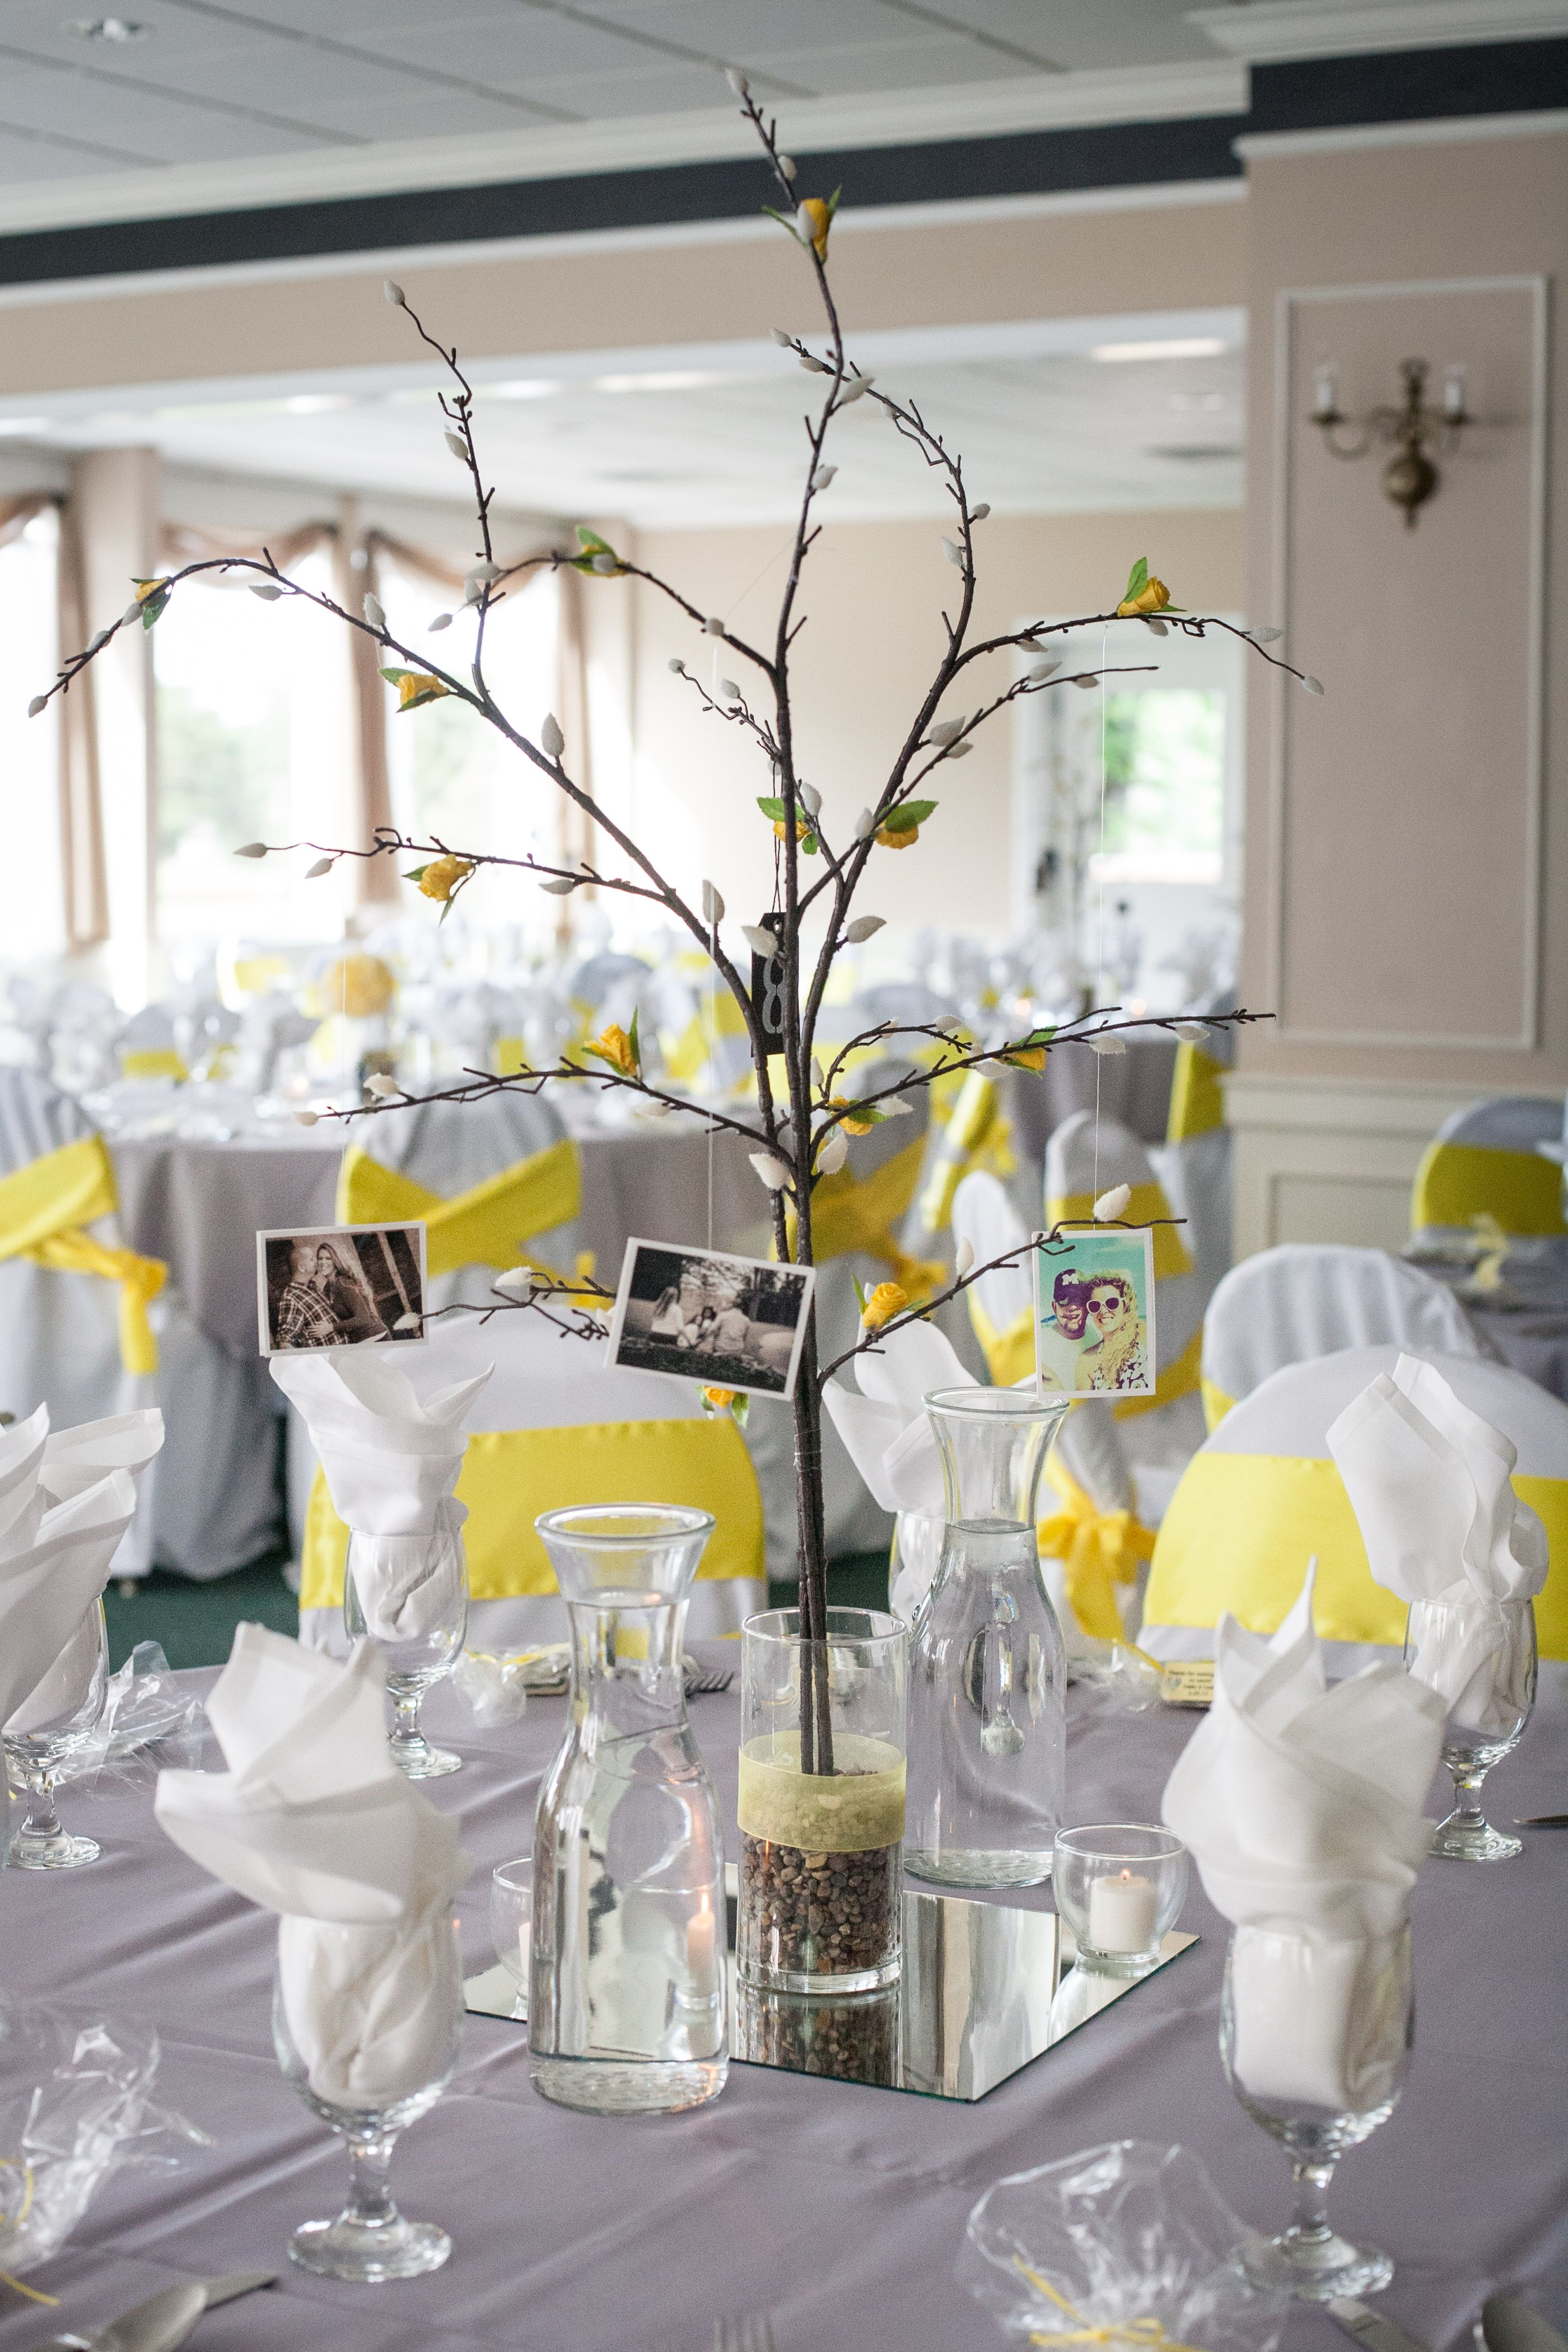 Diy wedding centerpiece branches pictures and crepe paper flower diy wedding centerpiece branches pictures and crepe paper flower buds yellow gray junglespirit Image collections